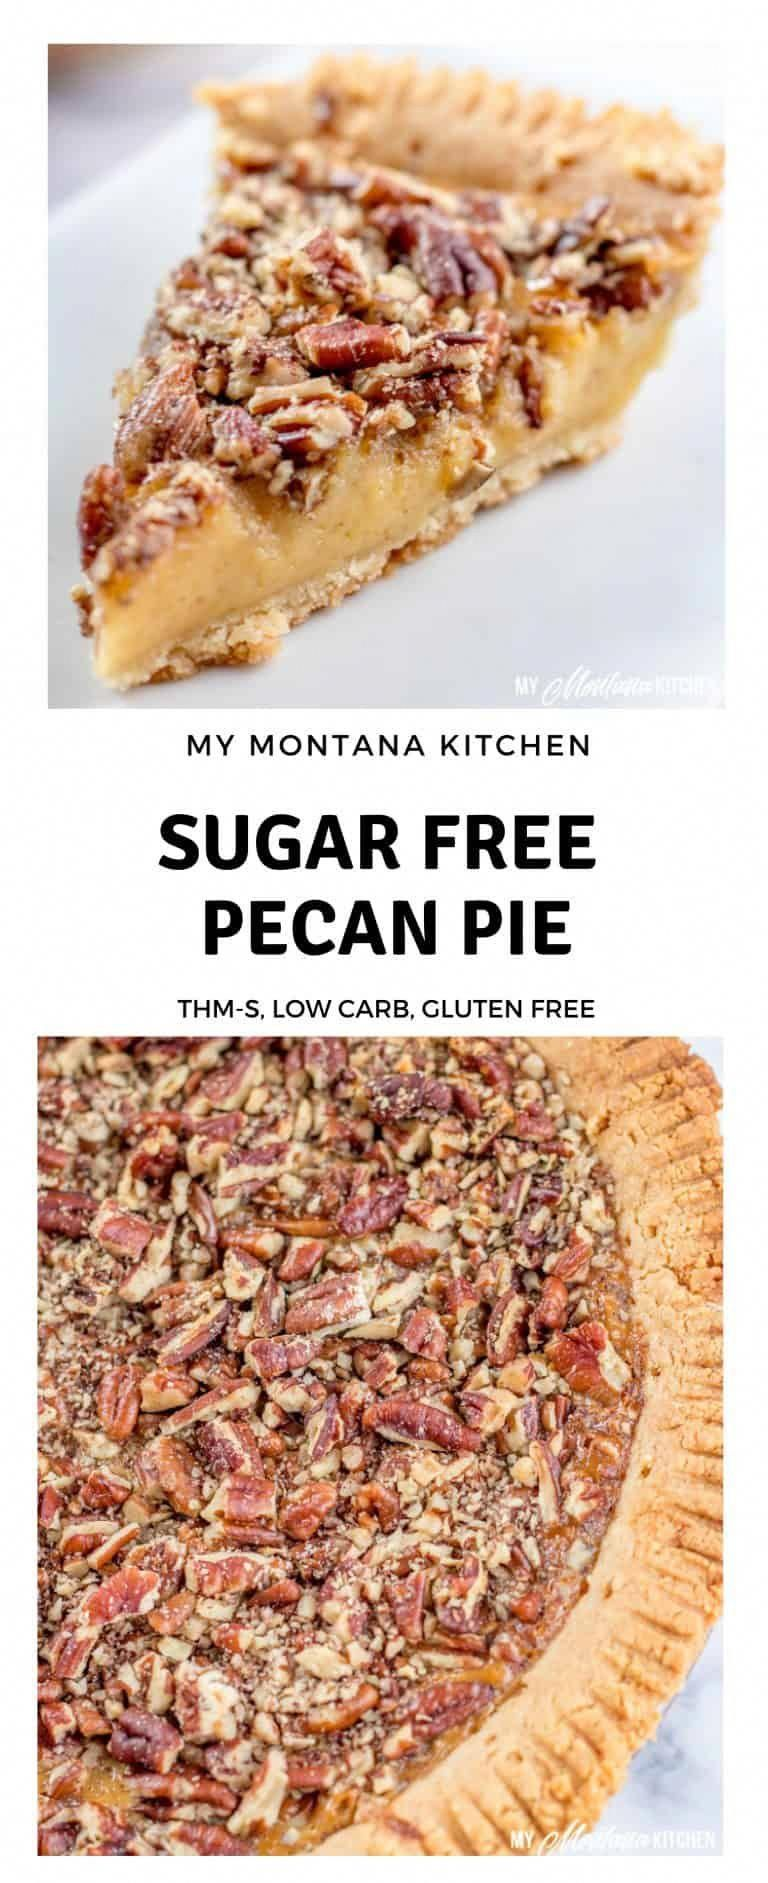 This Sugar Free Pecan Pie uses a low carb condensed milk to replace the traditional corn syrup used in pecan pie. This Low Carb Pecan Pie also works great as a Trim Healthy Mama S Dessert Recipe.